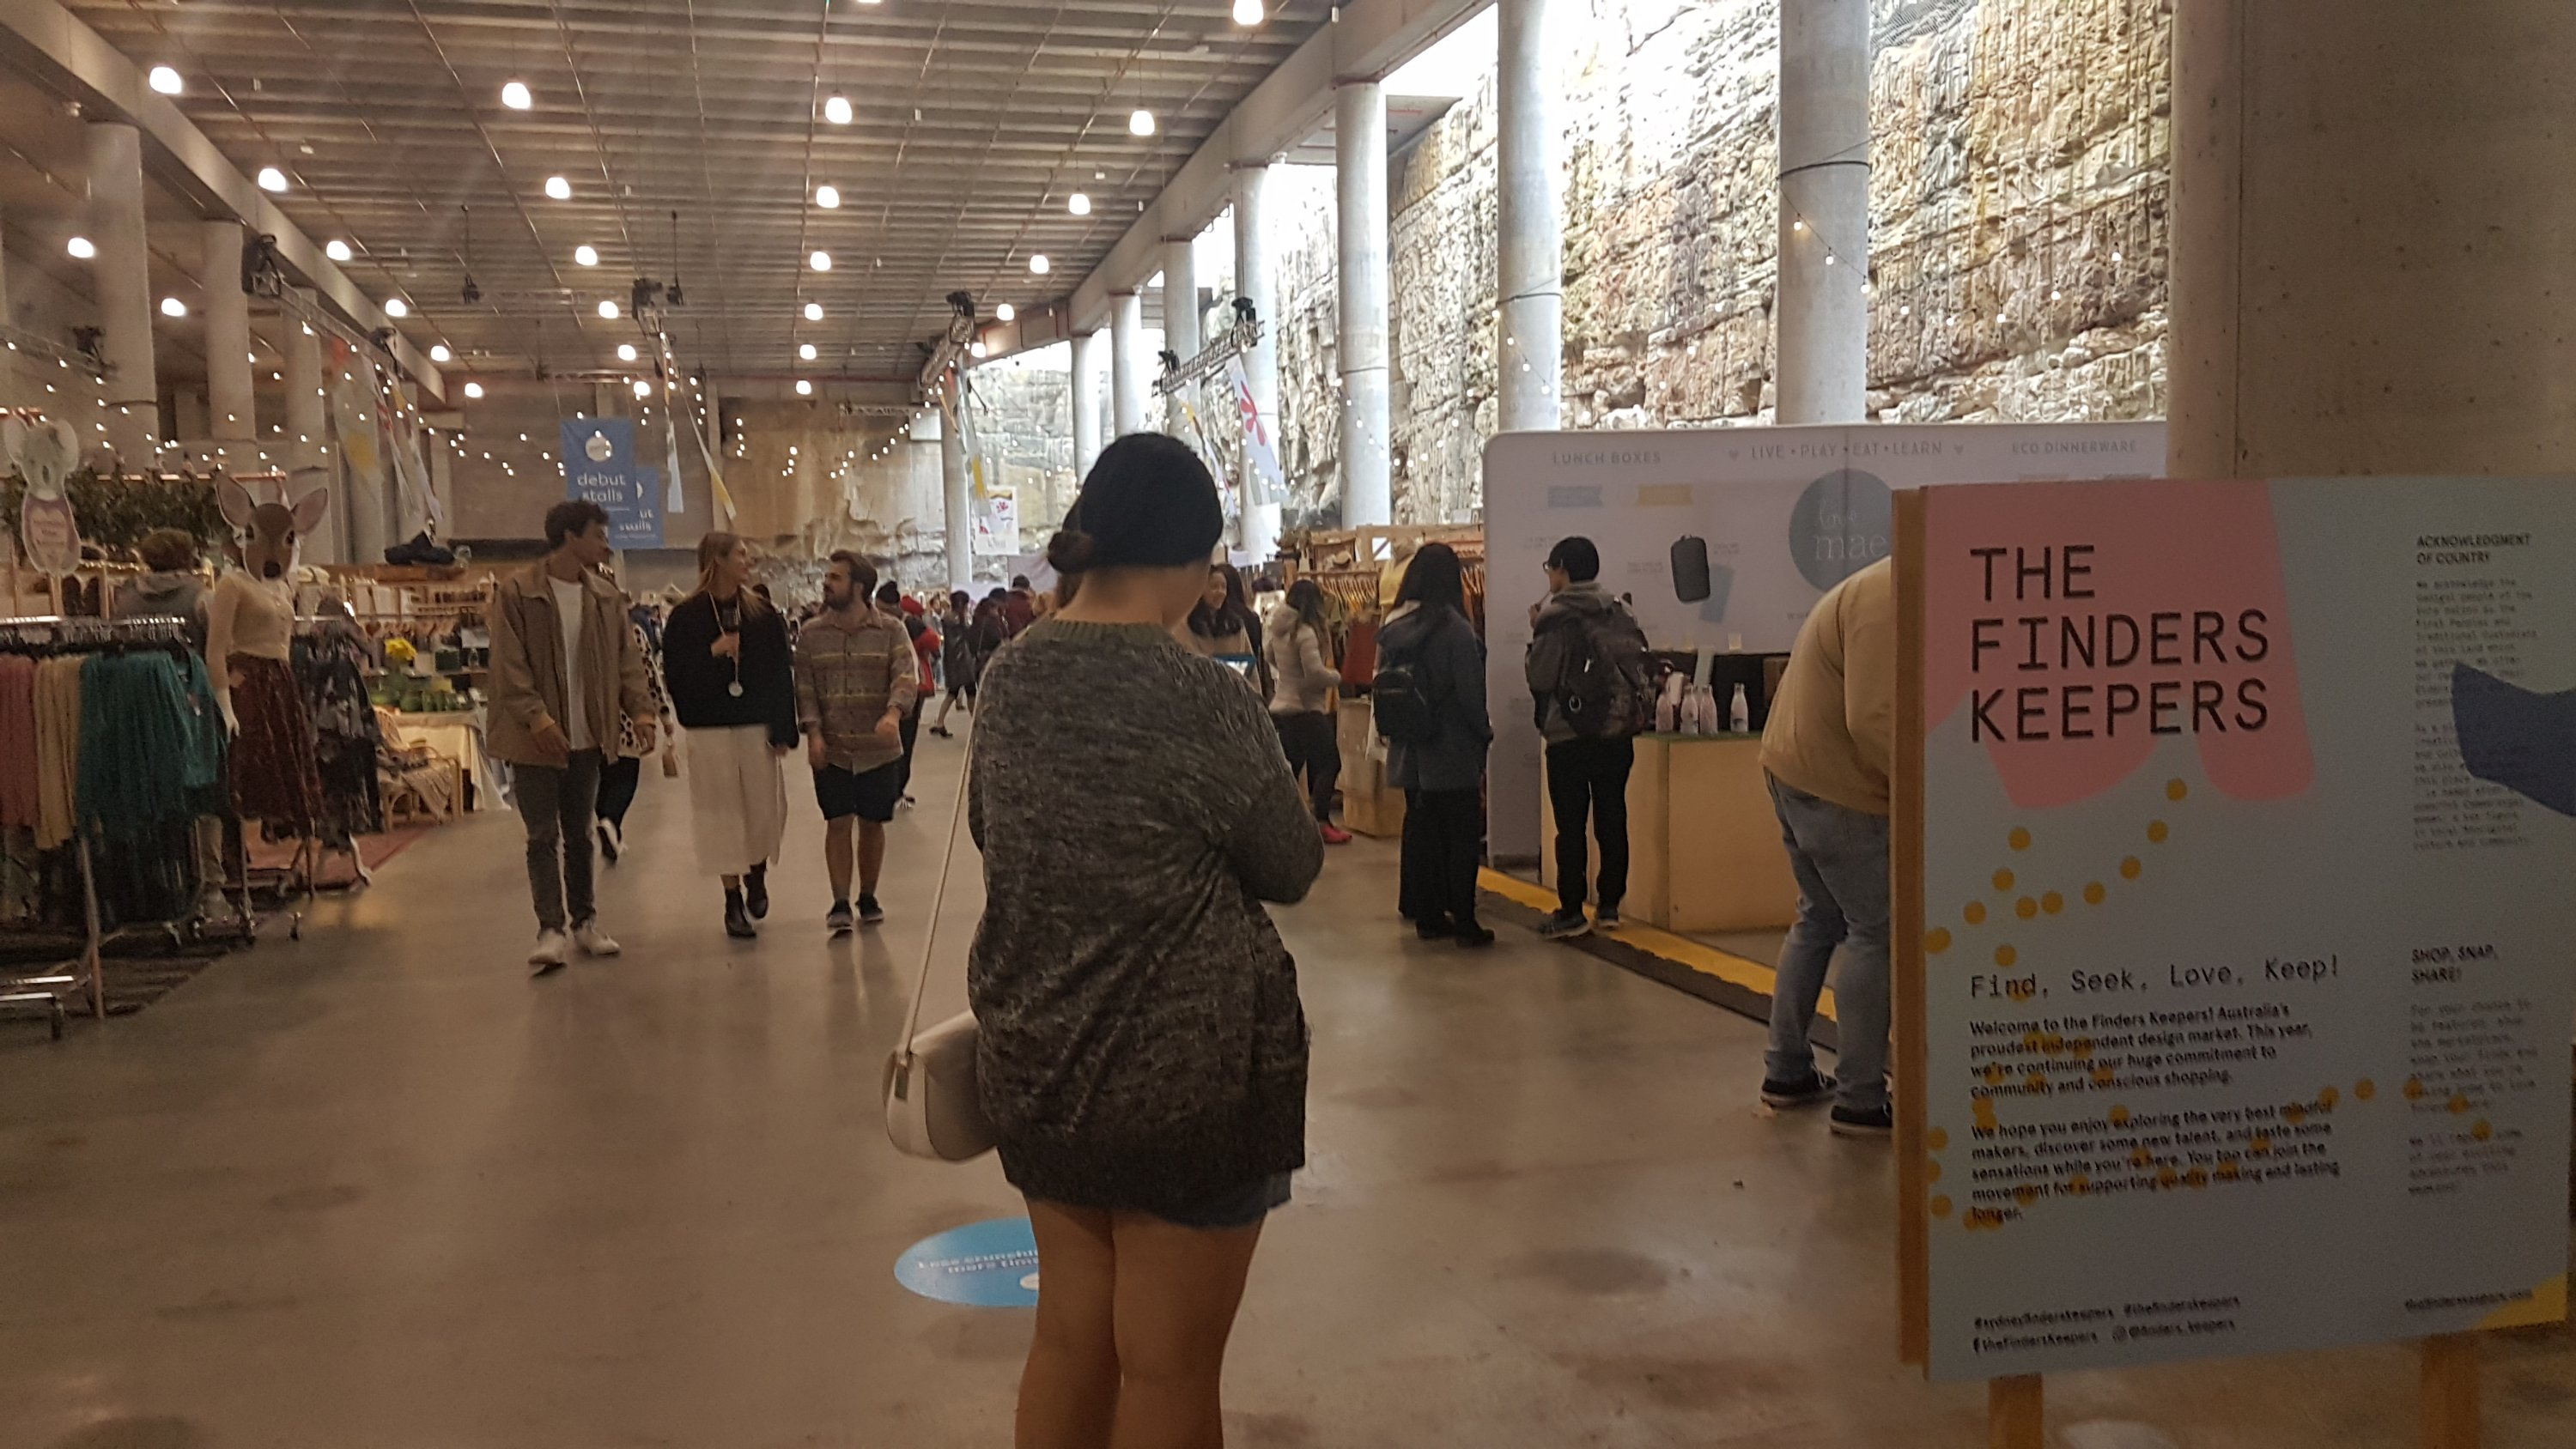 A woman stands at the entrance to Finders Keepers. In the background are other people walking near clothing racks and other stalls